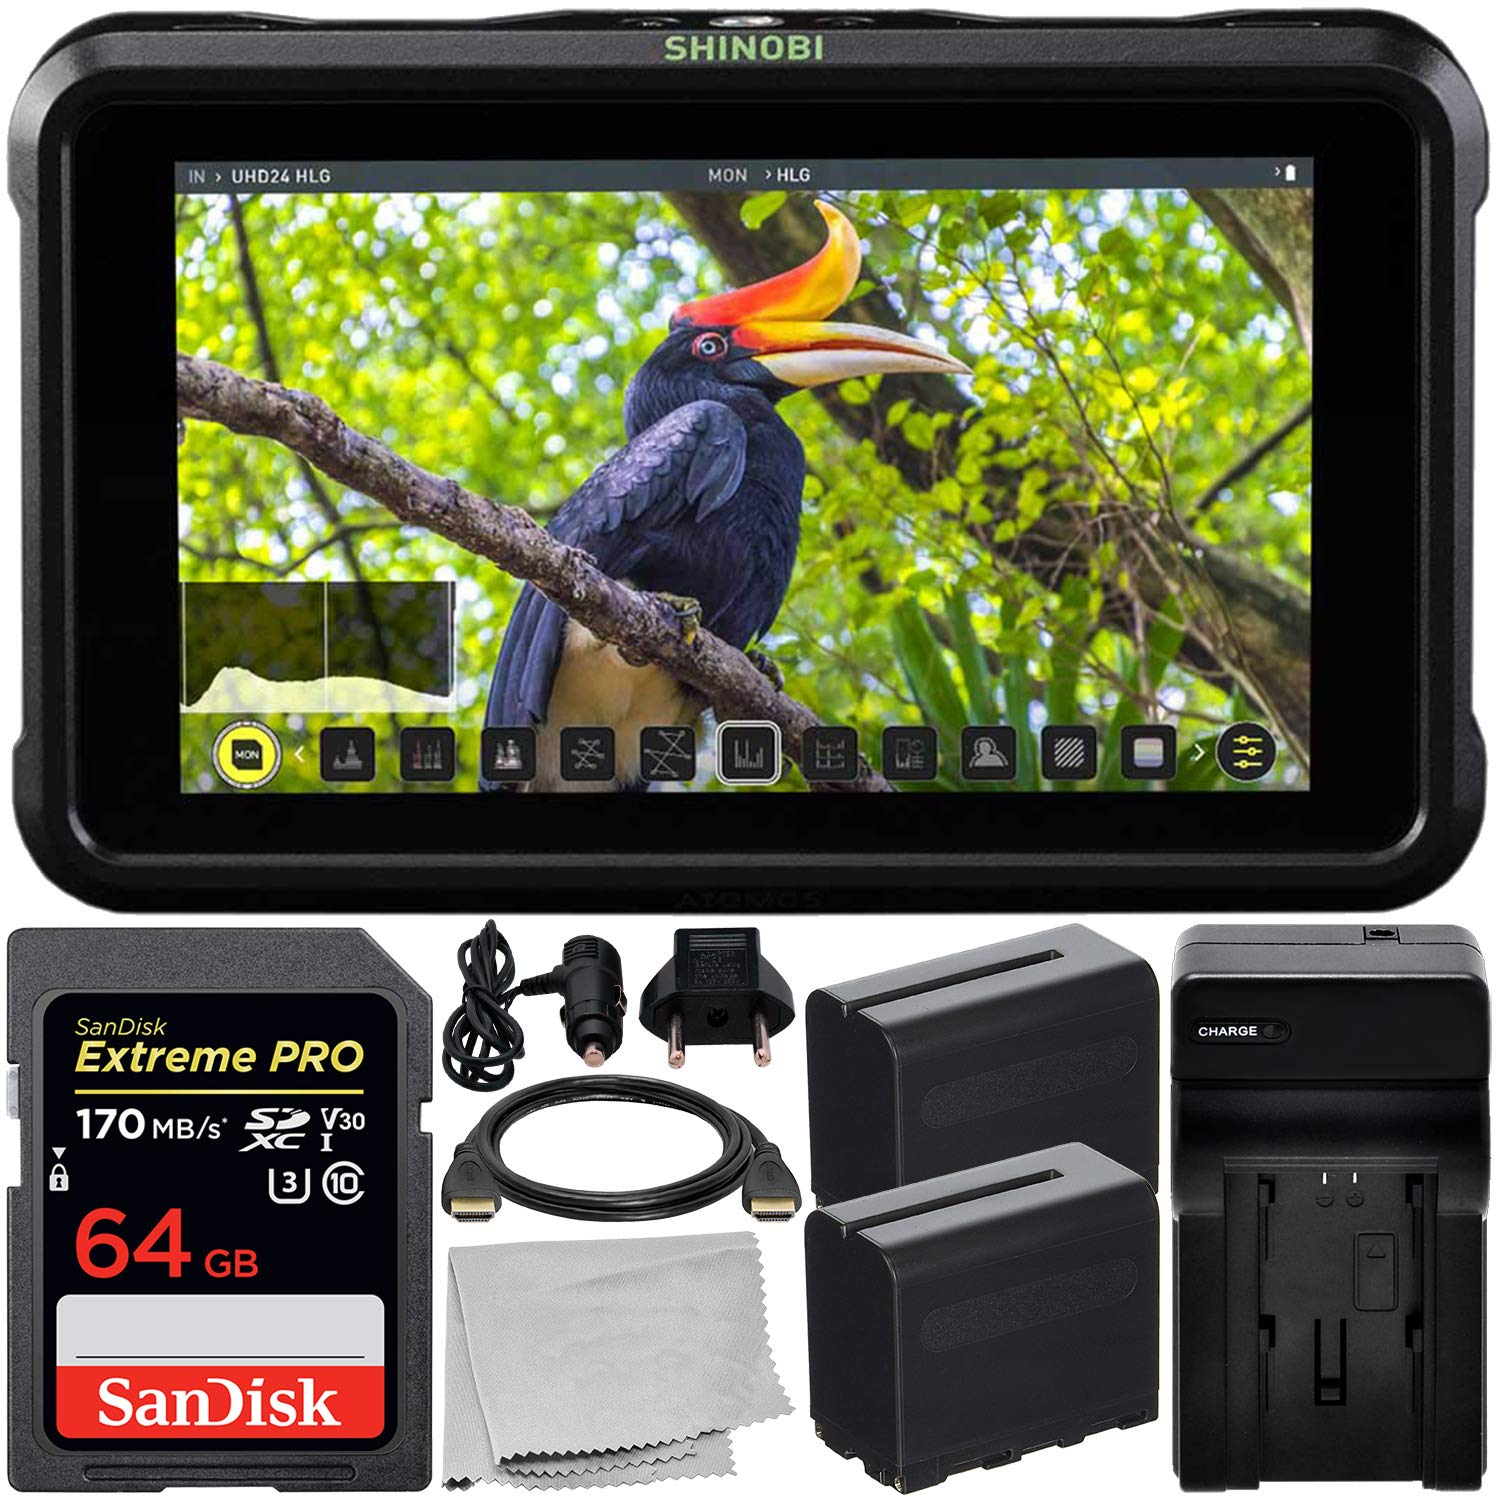 Atomos Shinobi 5.2'' 4K HDMI Monitor with Essential Accessory Bundle - Includes: SanDisk Extreme PRO 64GB SDXC Memory Card + 2x Extended Life NP-F970 L-Series Batteries with Charger + HDMI Cable + MORE by Atomos